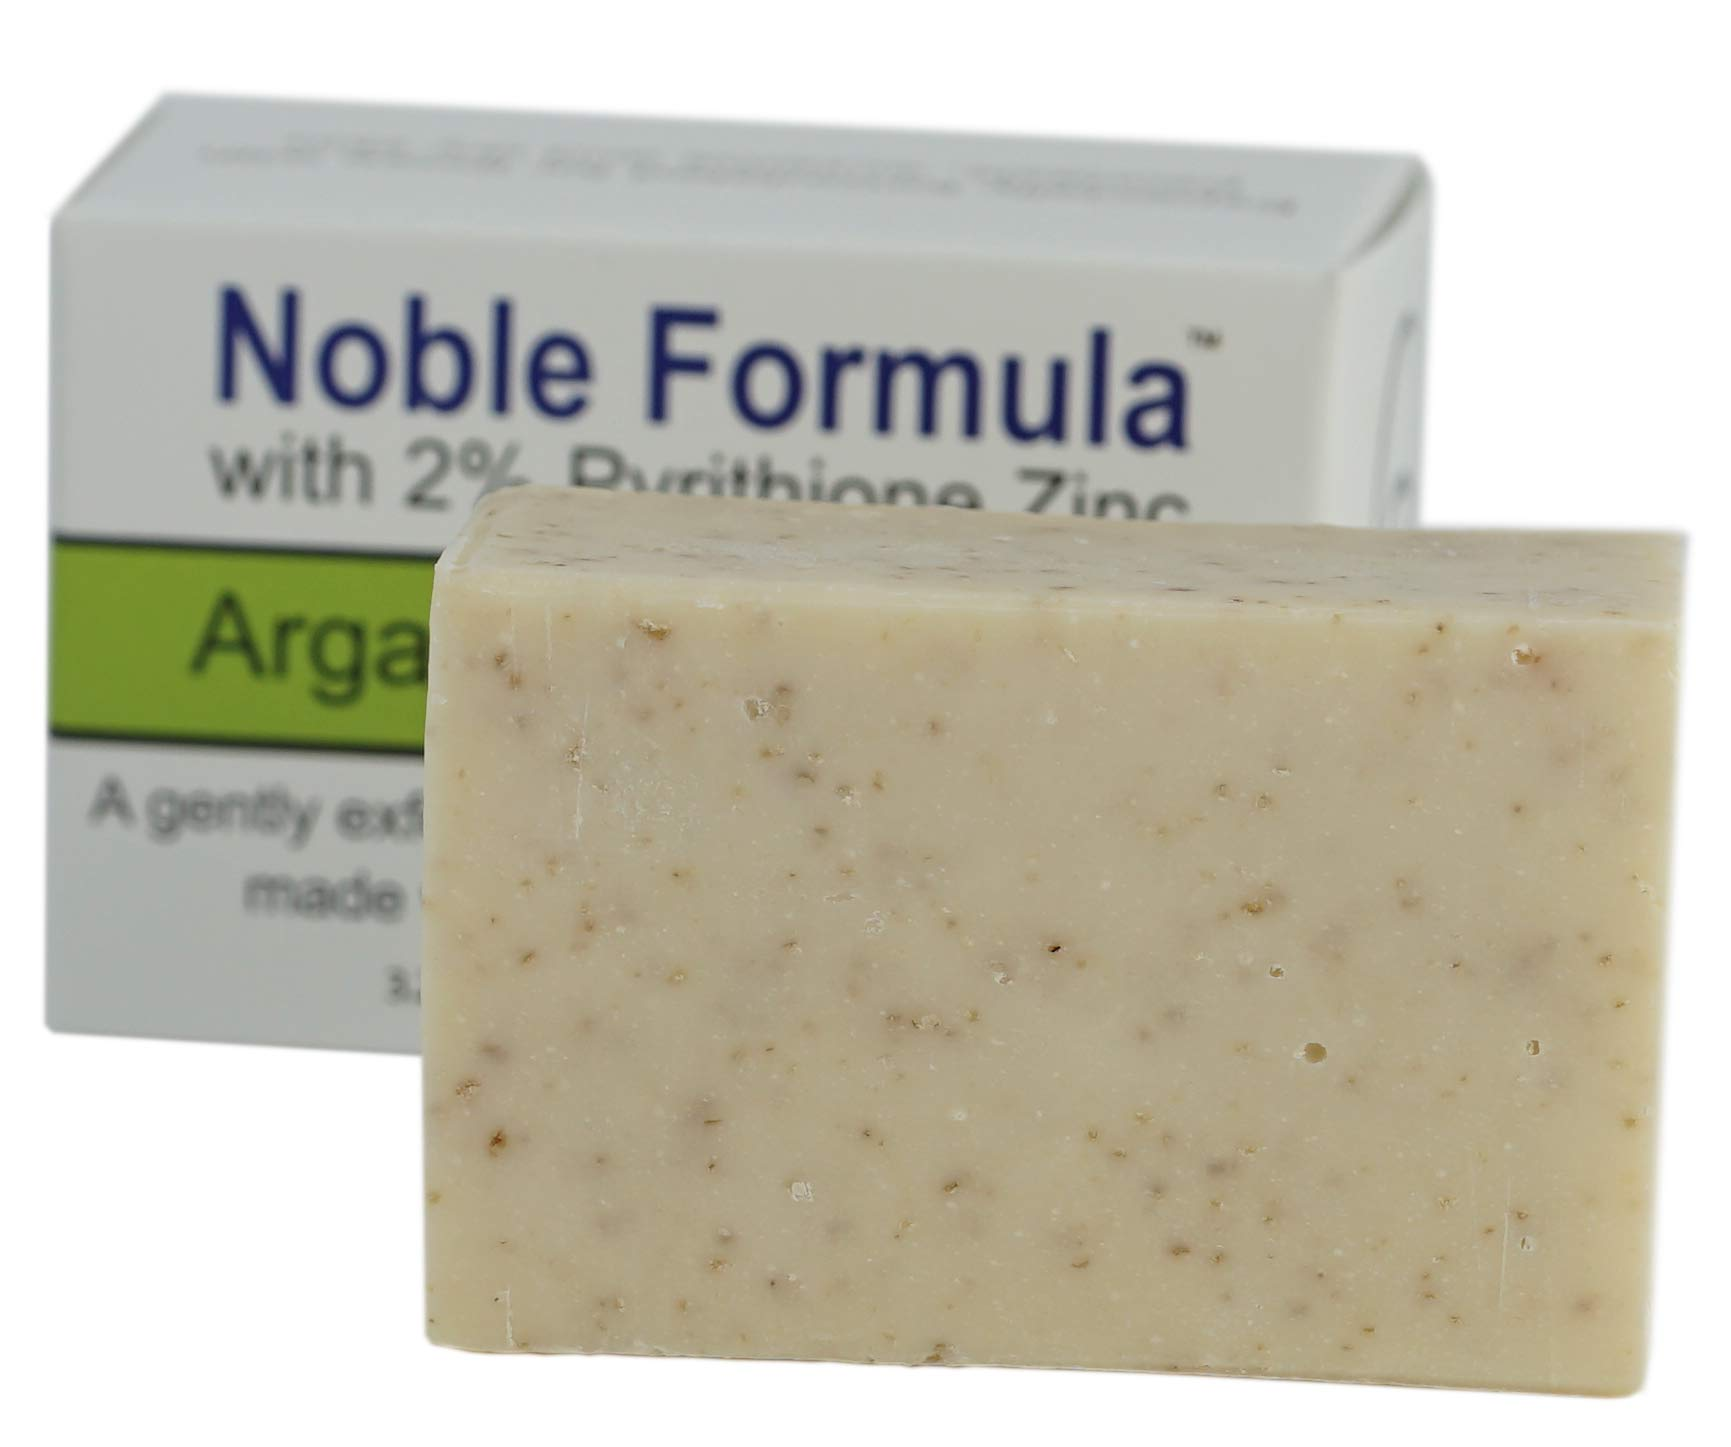 Noble Formula 2% Pyrithione Zinc (ZnP) Argan Oil Bar Soap, 3.25 oz by Noble Formula